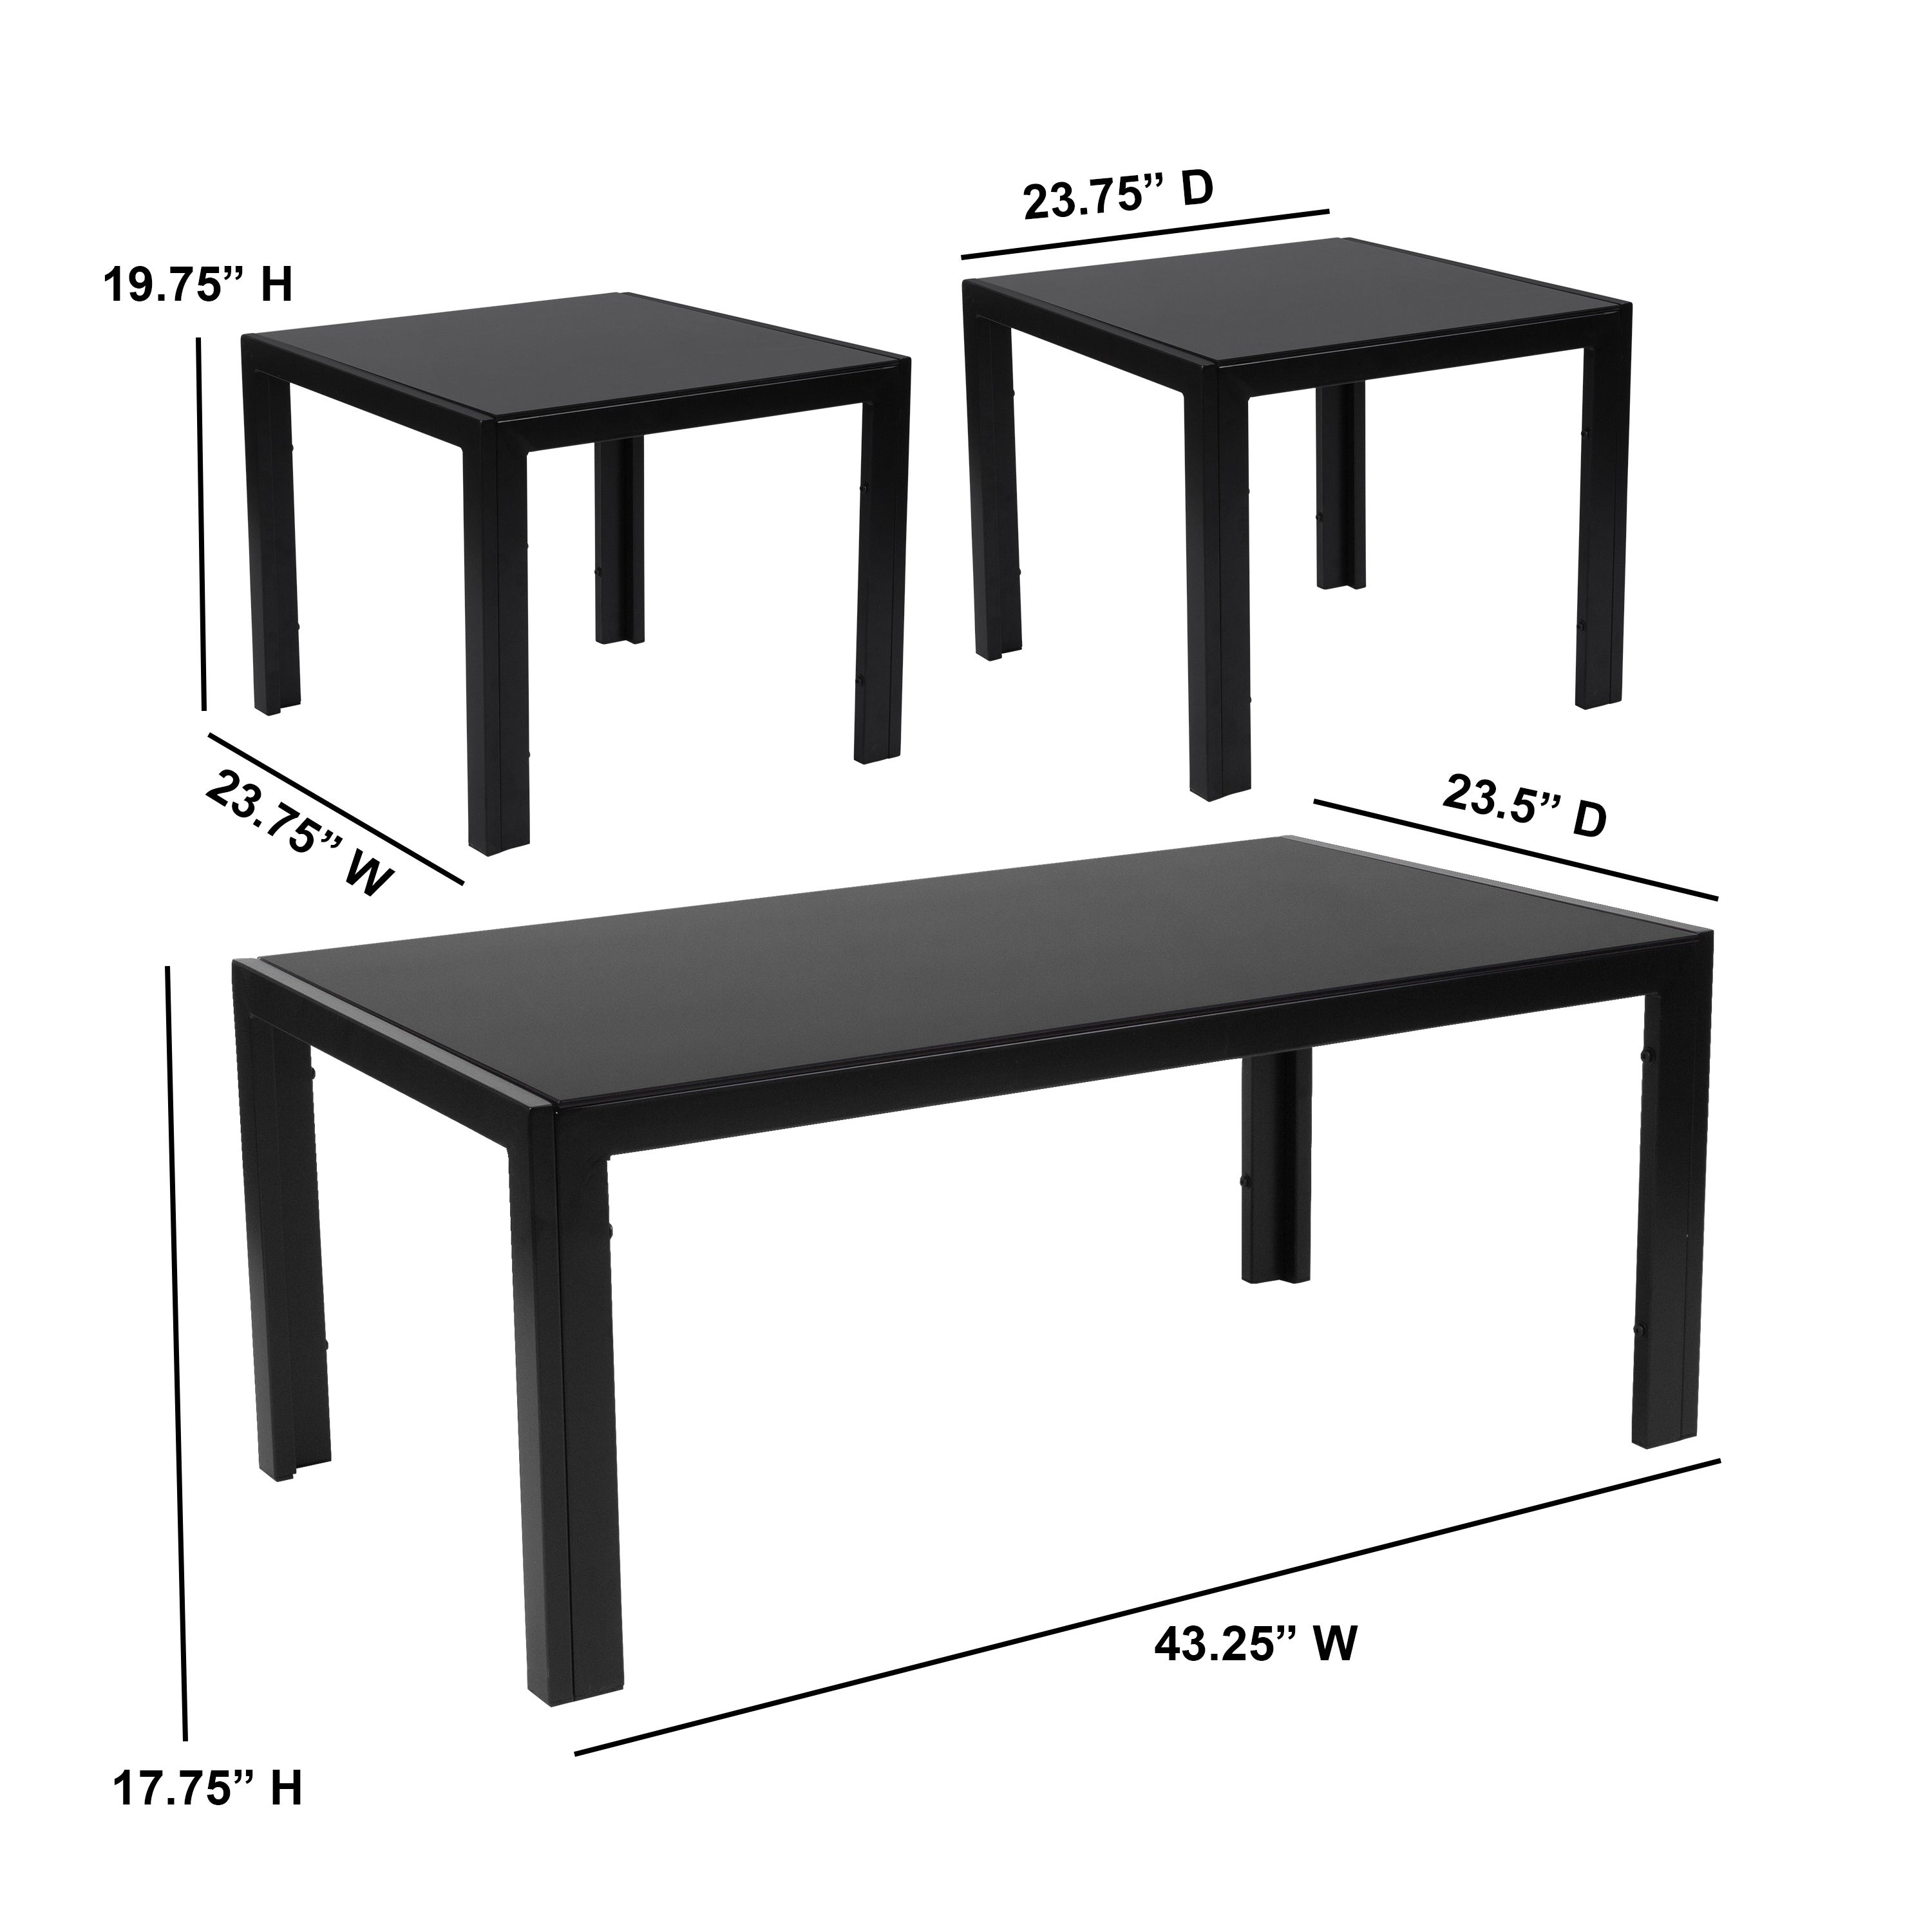 3 Piece Coffee And End Table Set With Glass Tops And Metal Legs Overstock 22576010